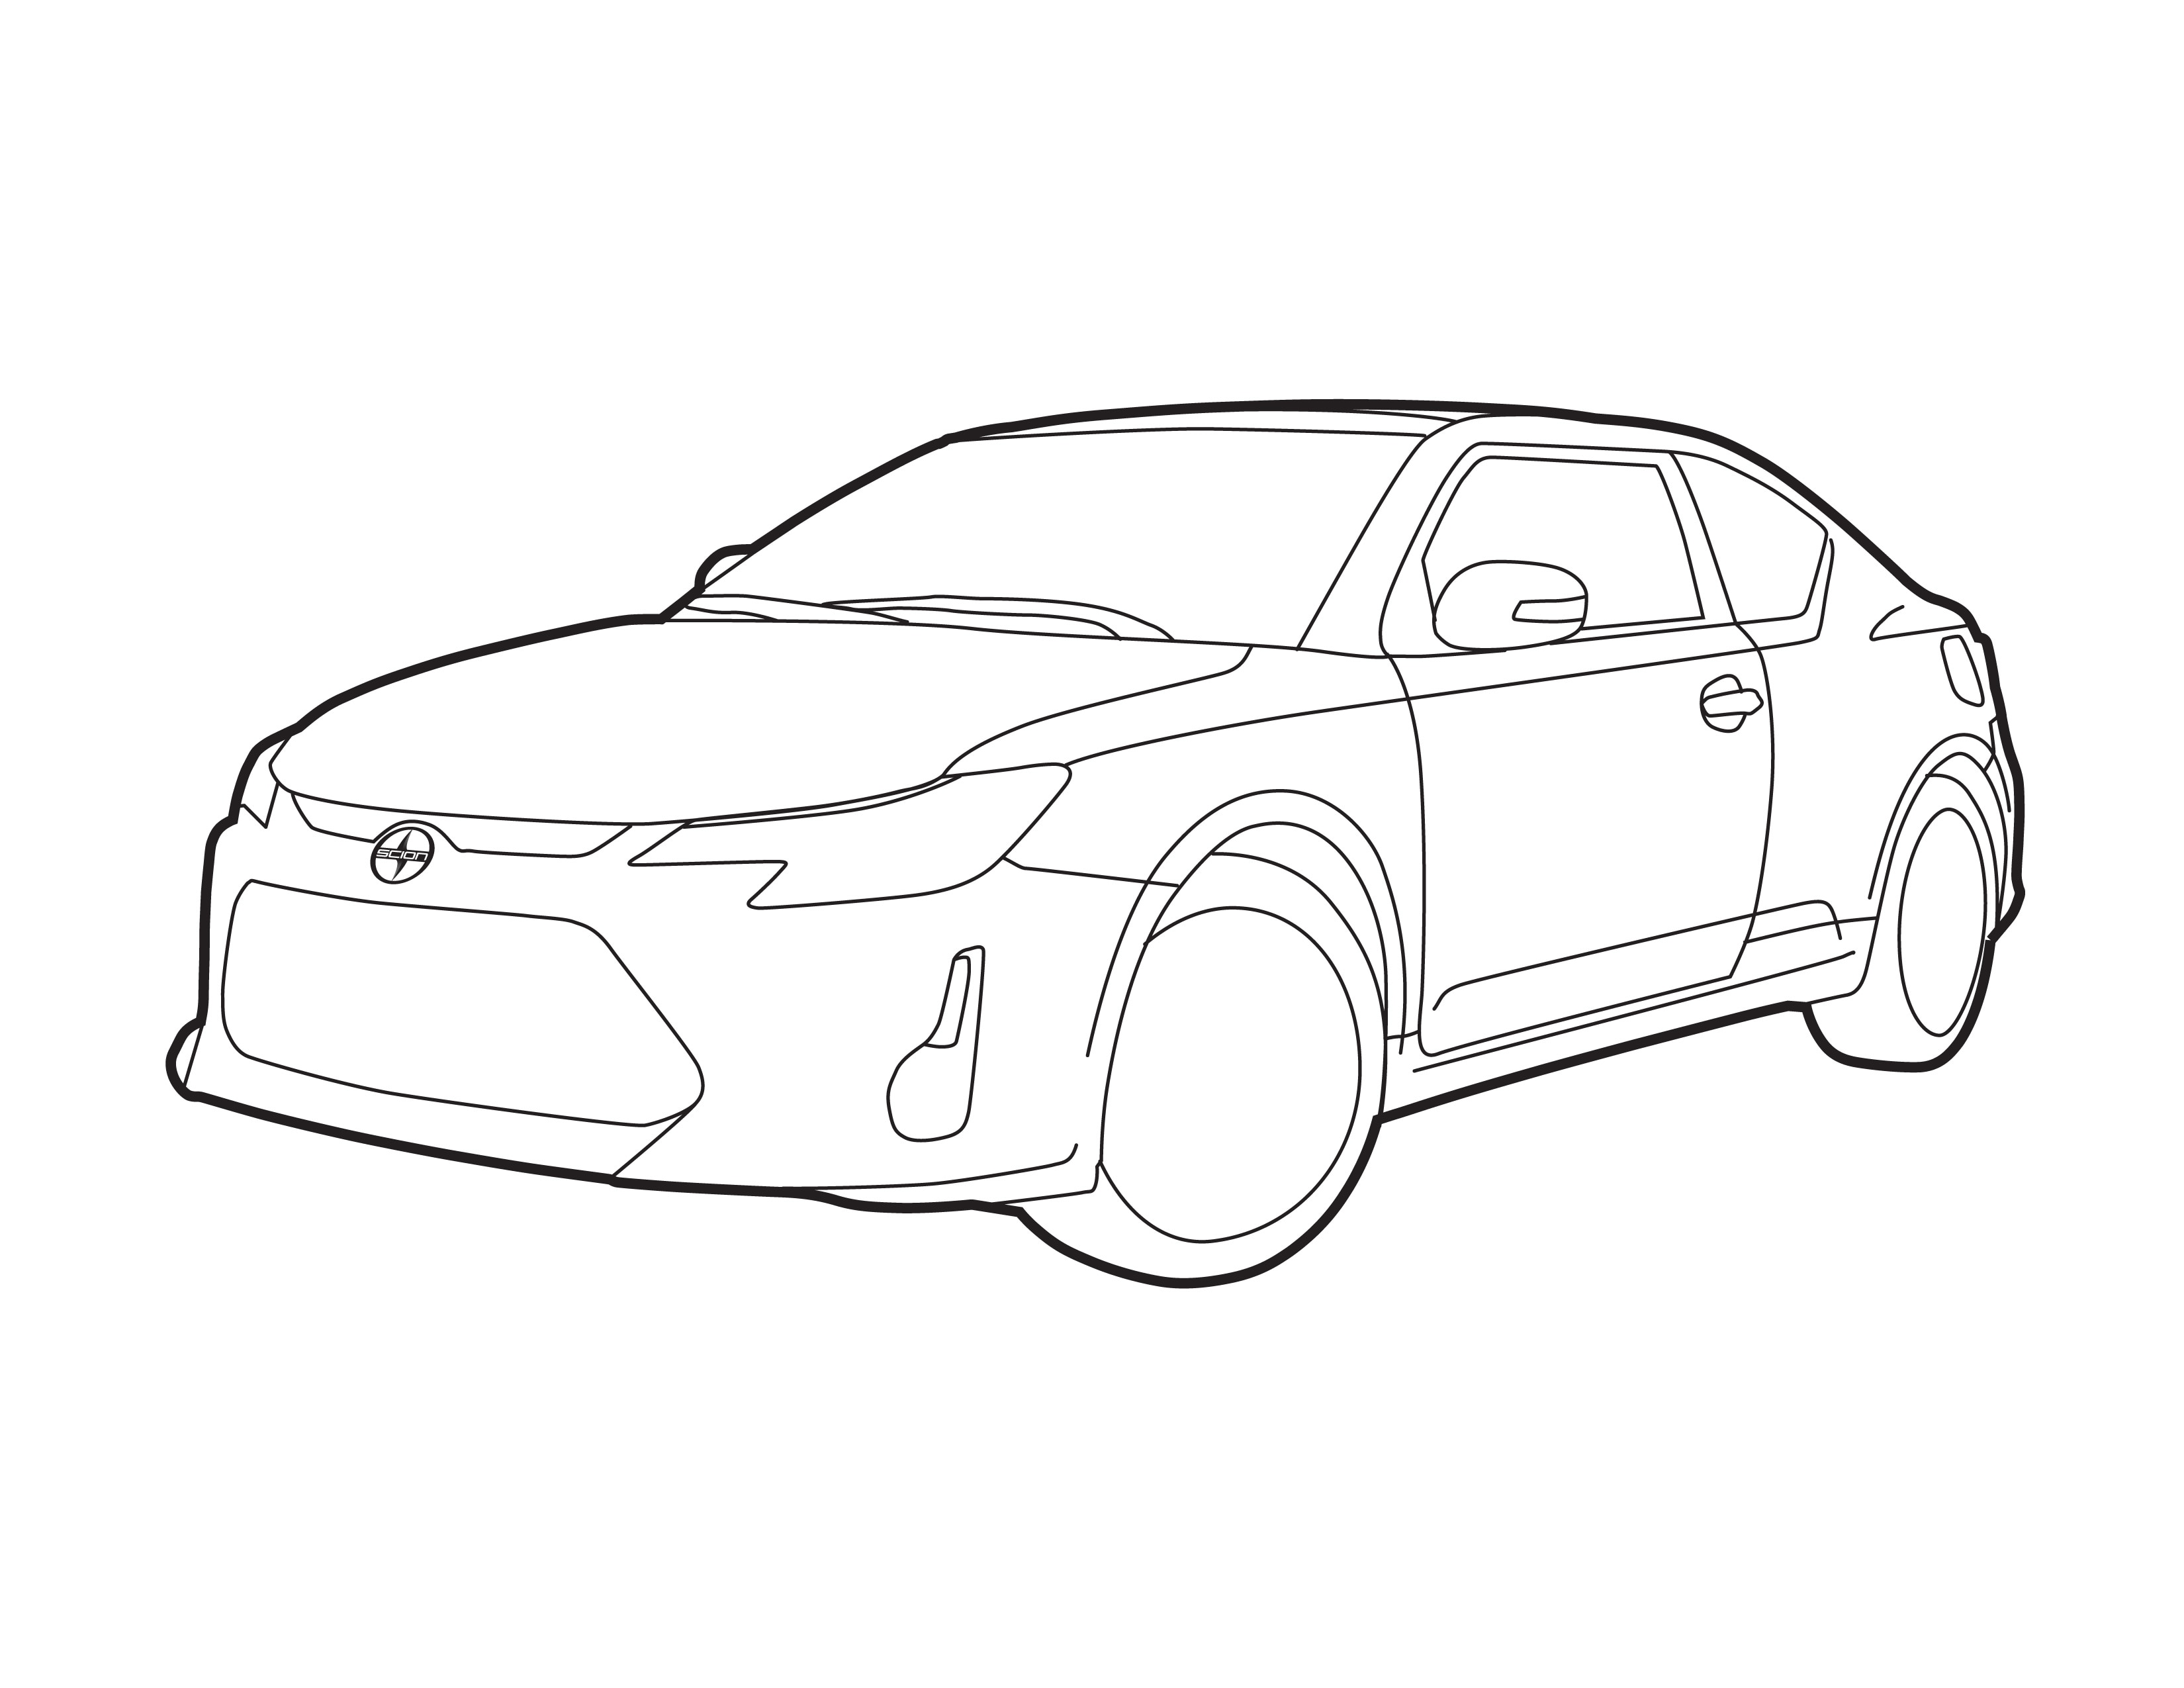 Can a Toyota Scion be a Hot Rod? Scion's tC Tuner